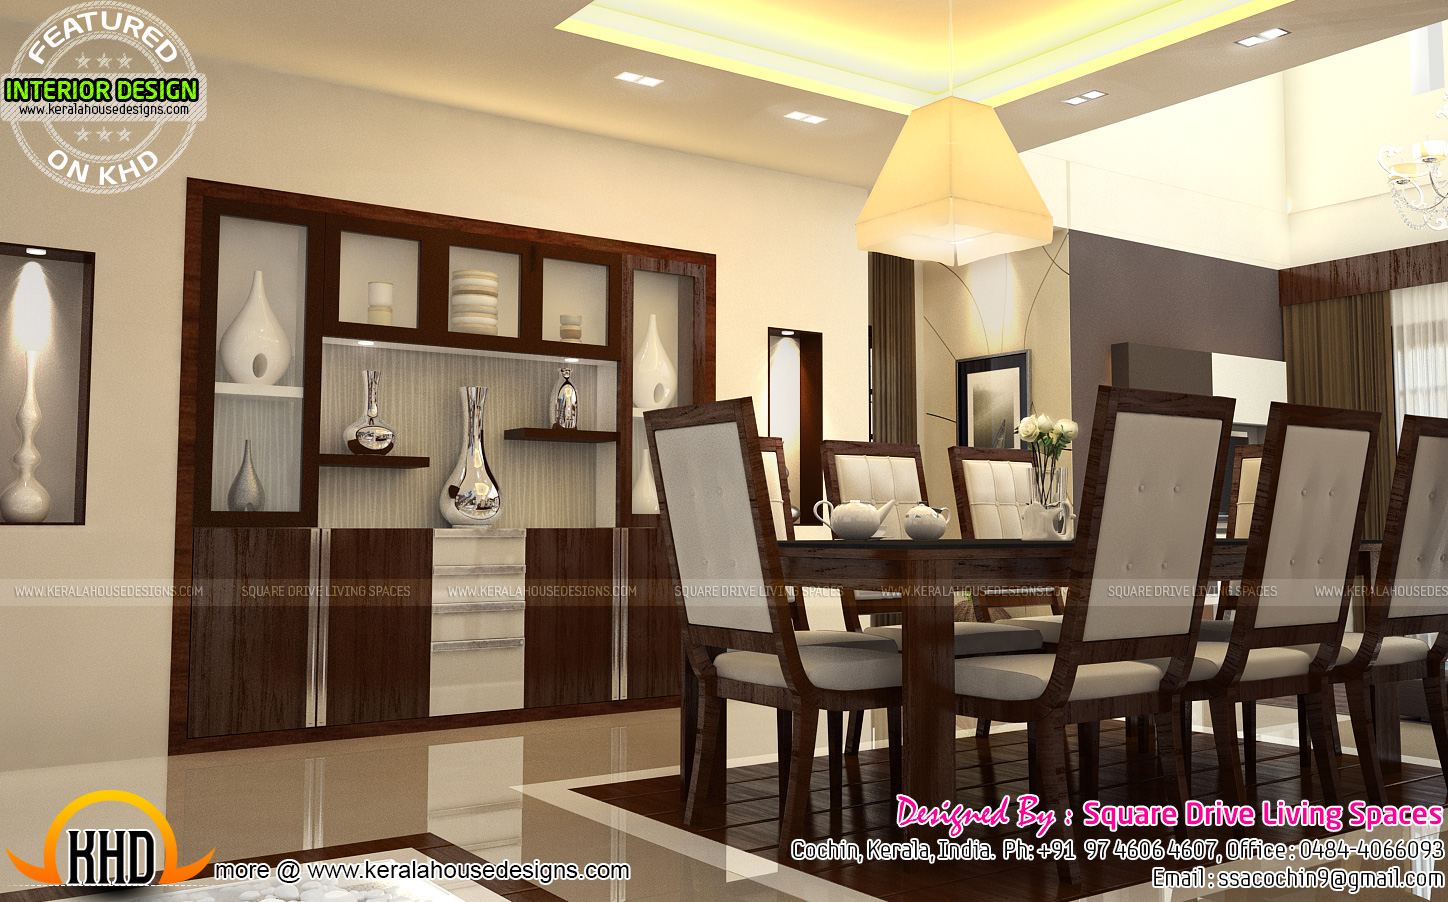 Interior designs of master bedroom living kitchen and for Dining room designs india